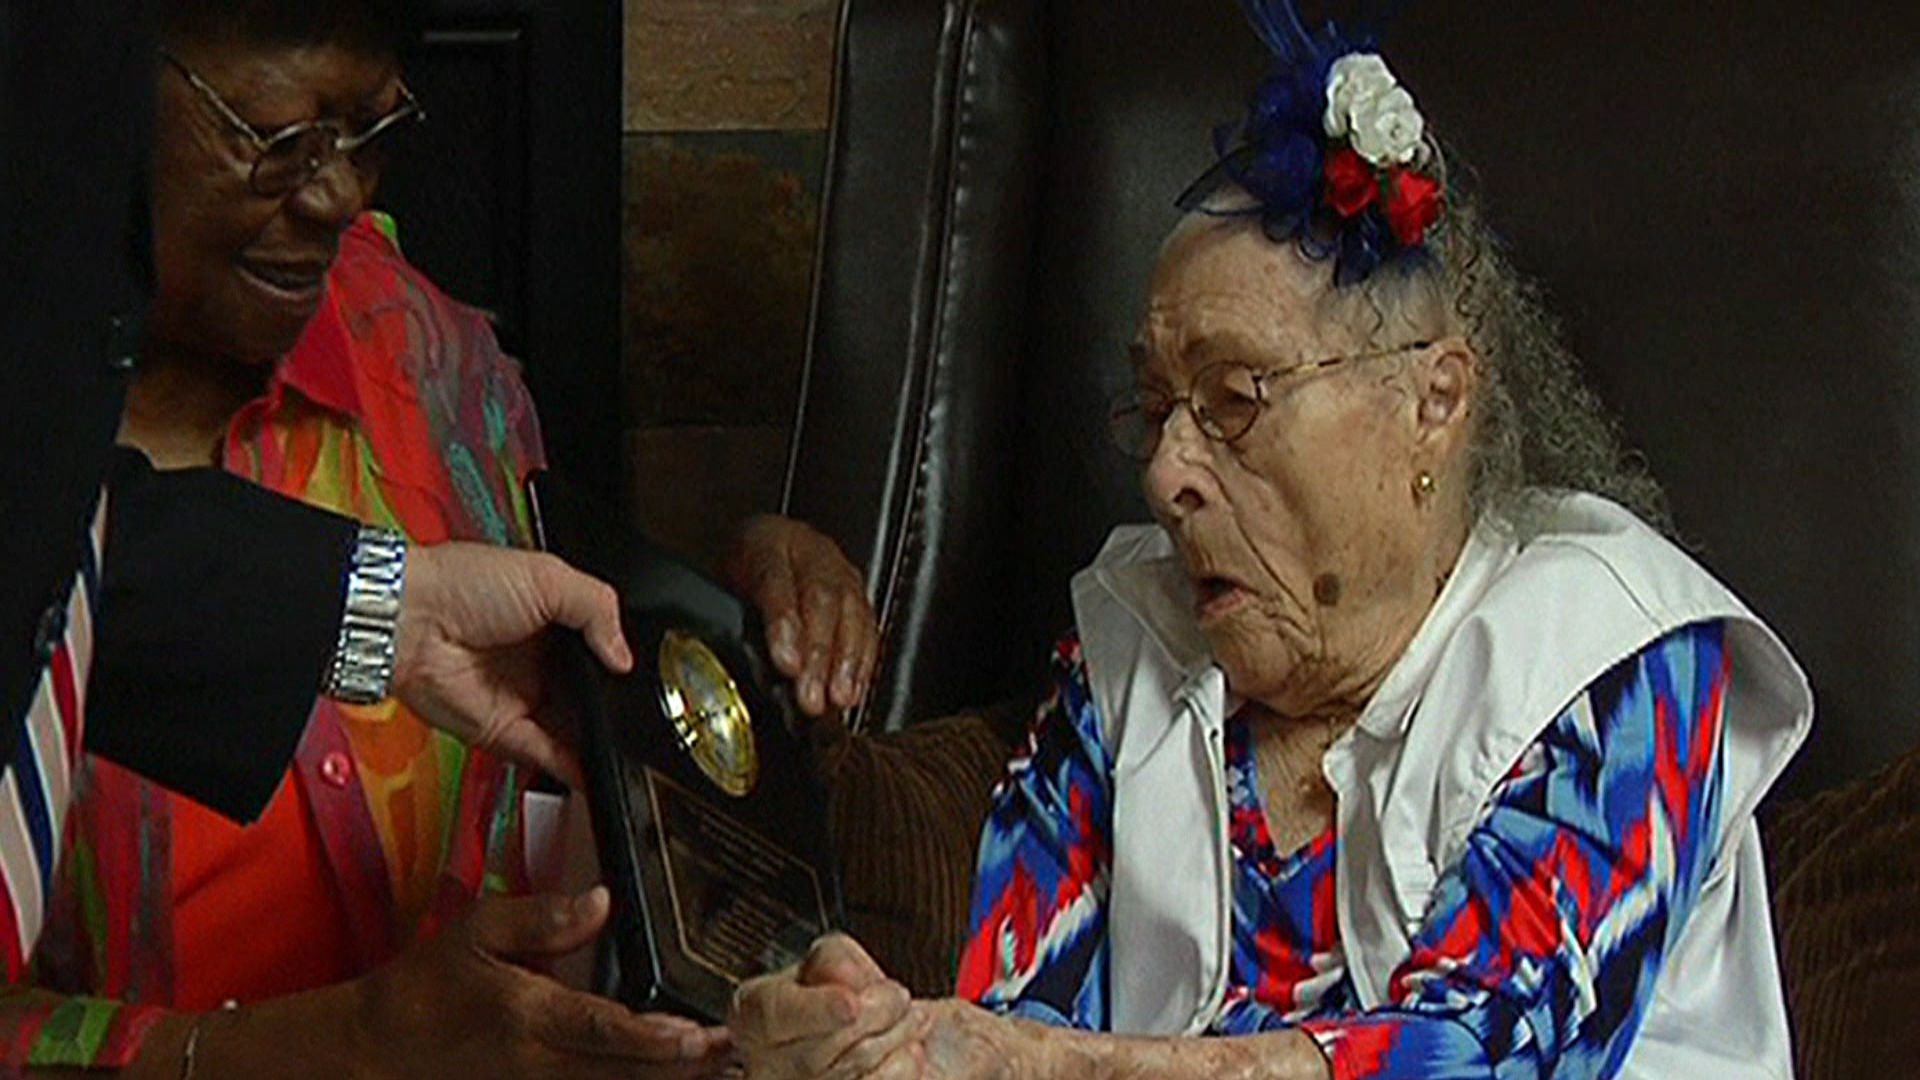 Oldest woman in United States turns 116